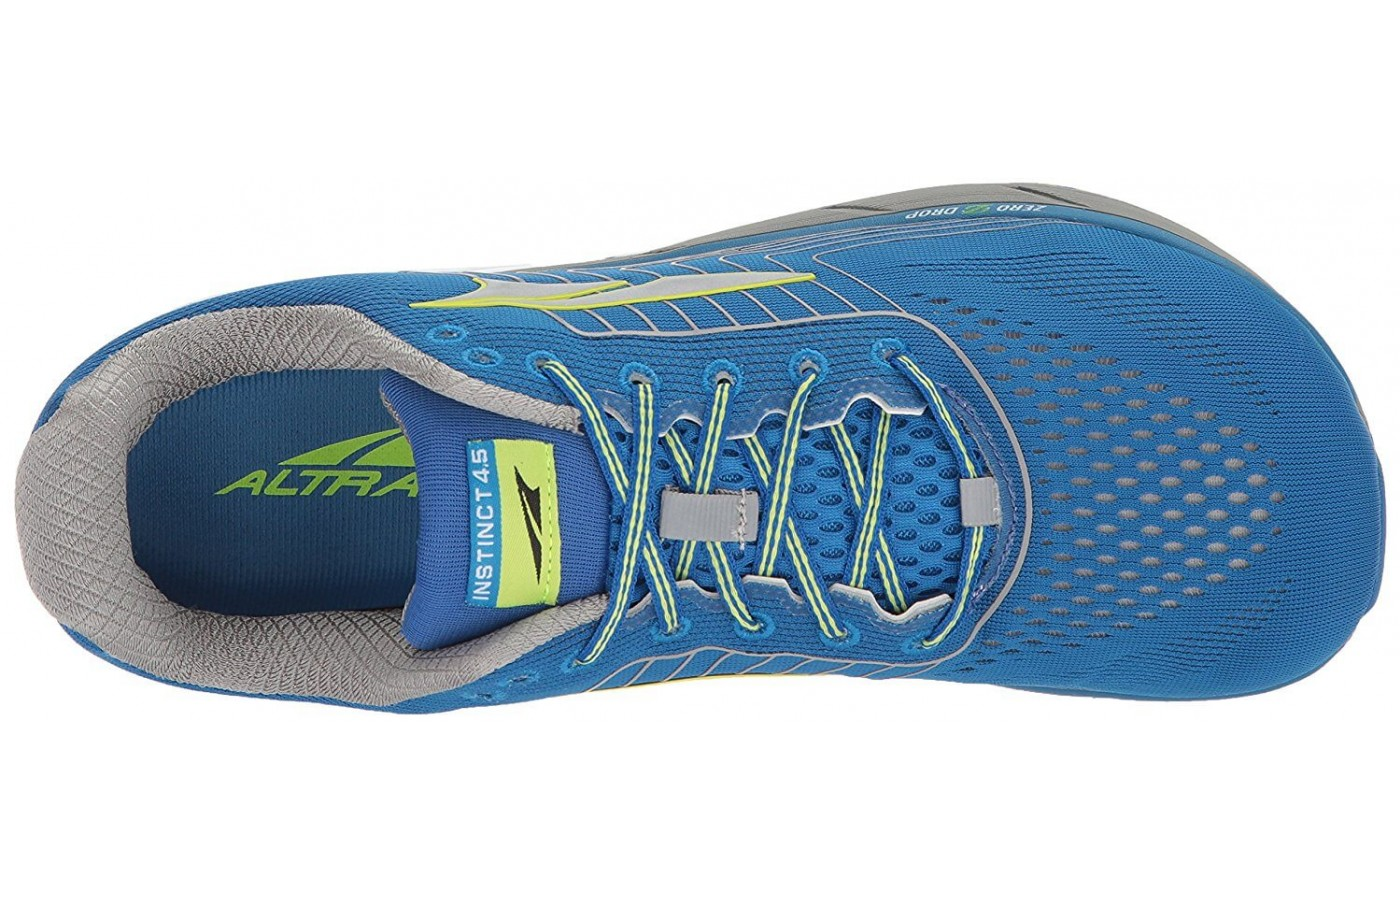 Upper of Altra Instinct 4.5